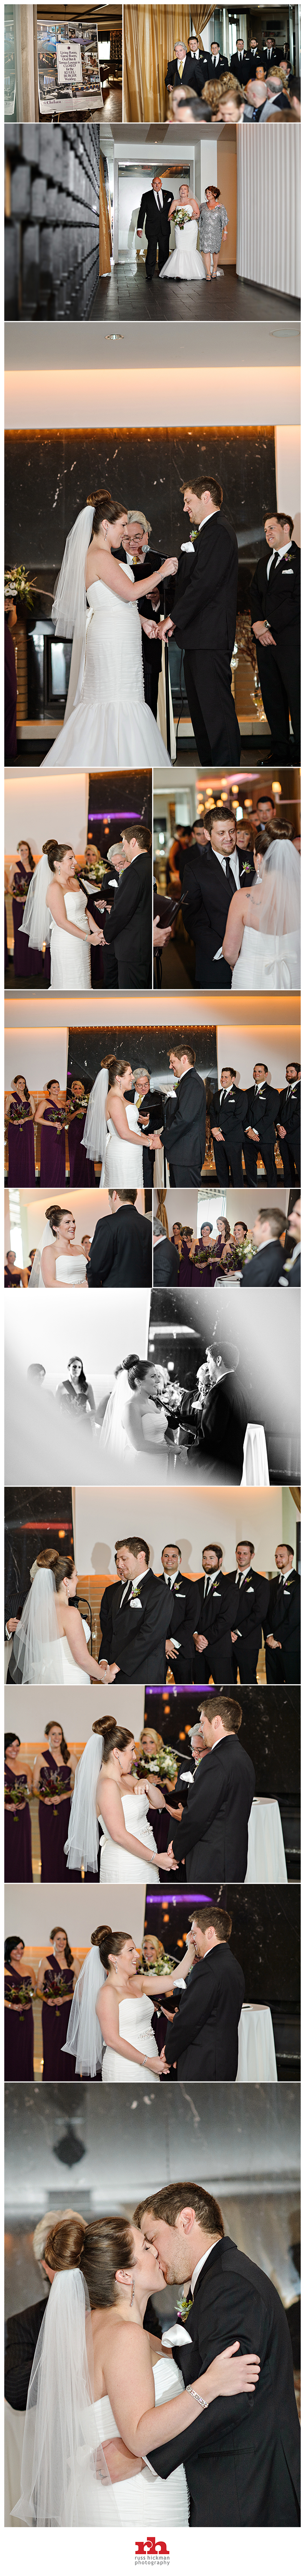 Philadelphia Wedding Photographer LAWB006